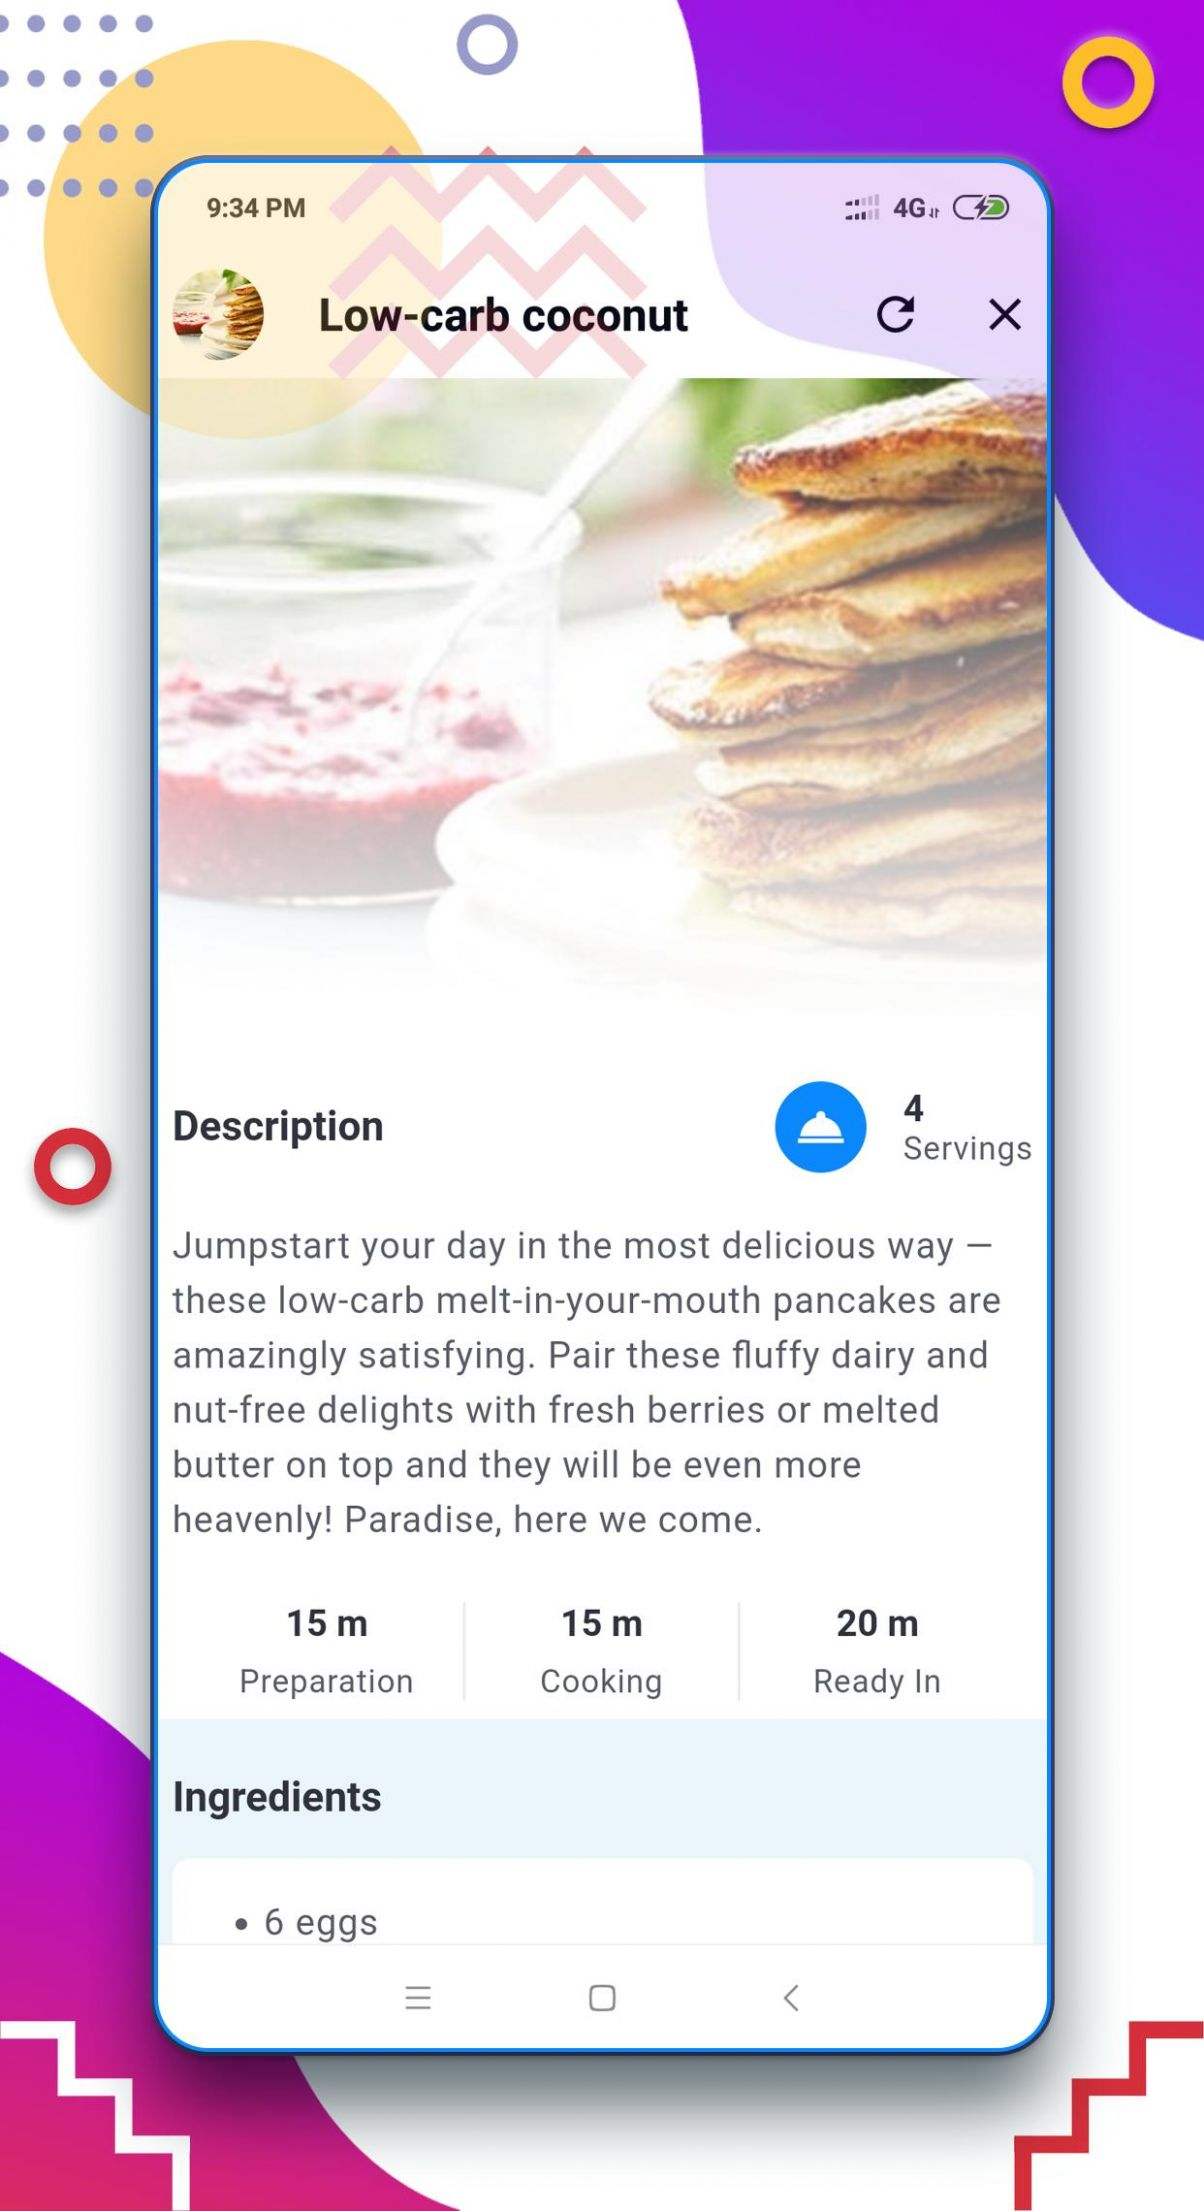 Low Carb Breakfast Recipes App for Android - APK Download - Breakfast Recipes App